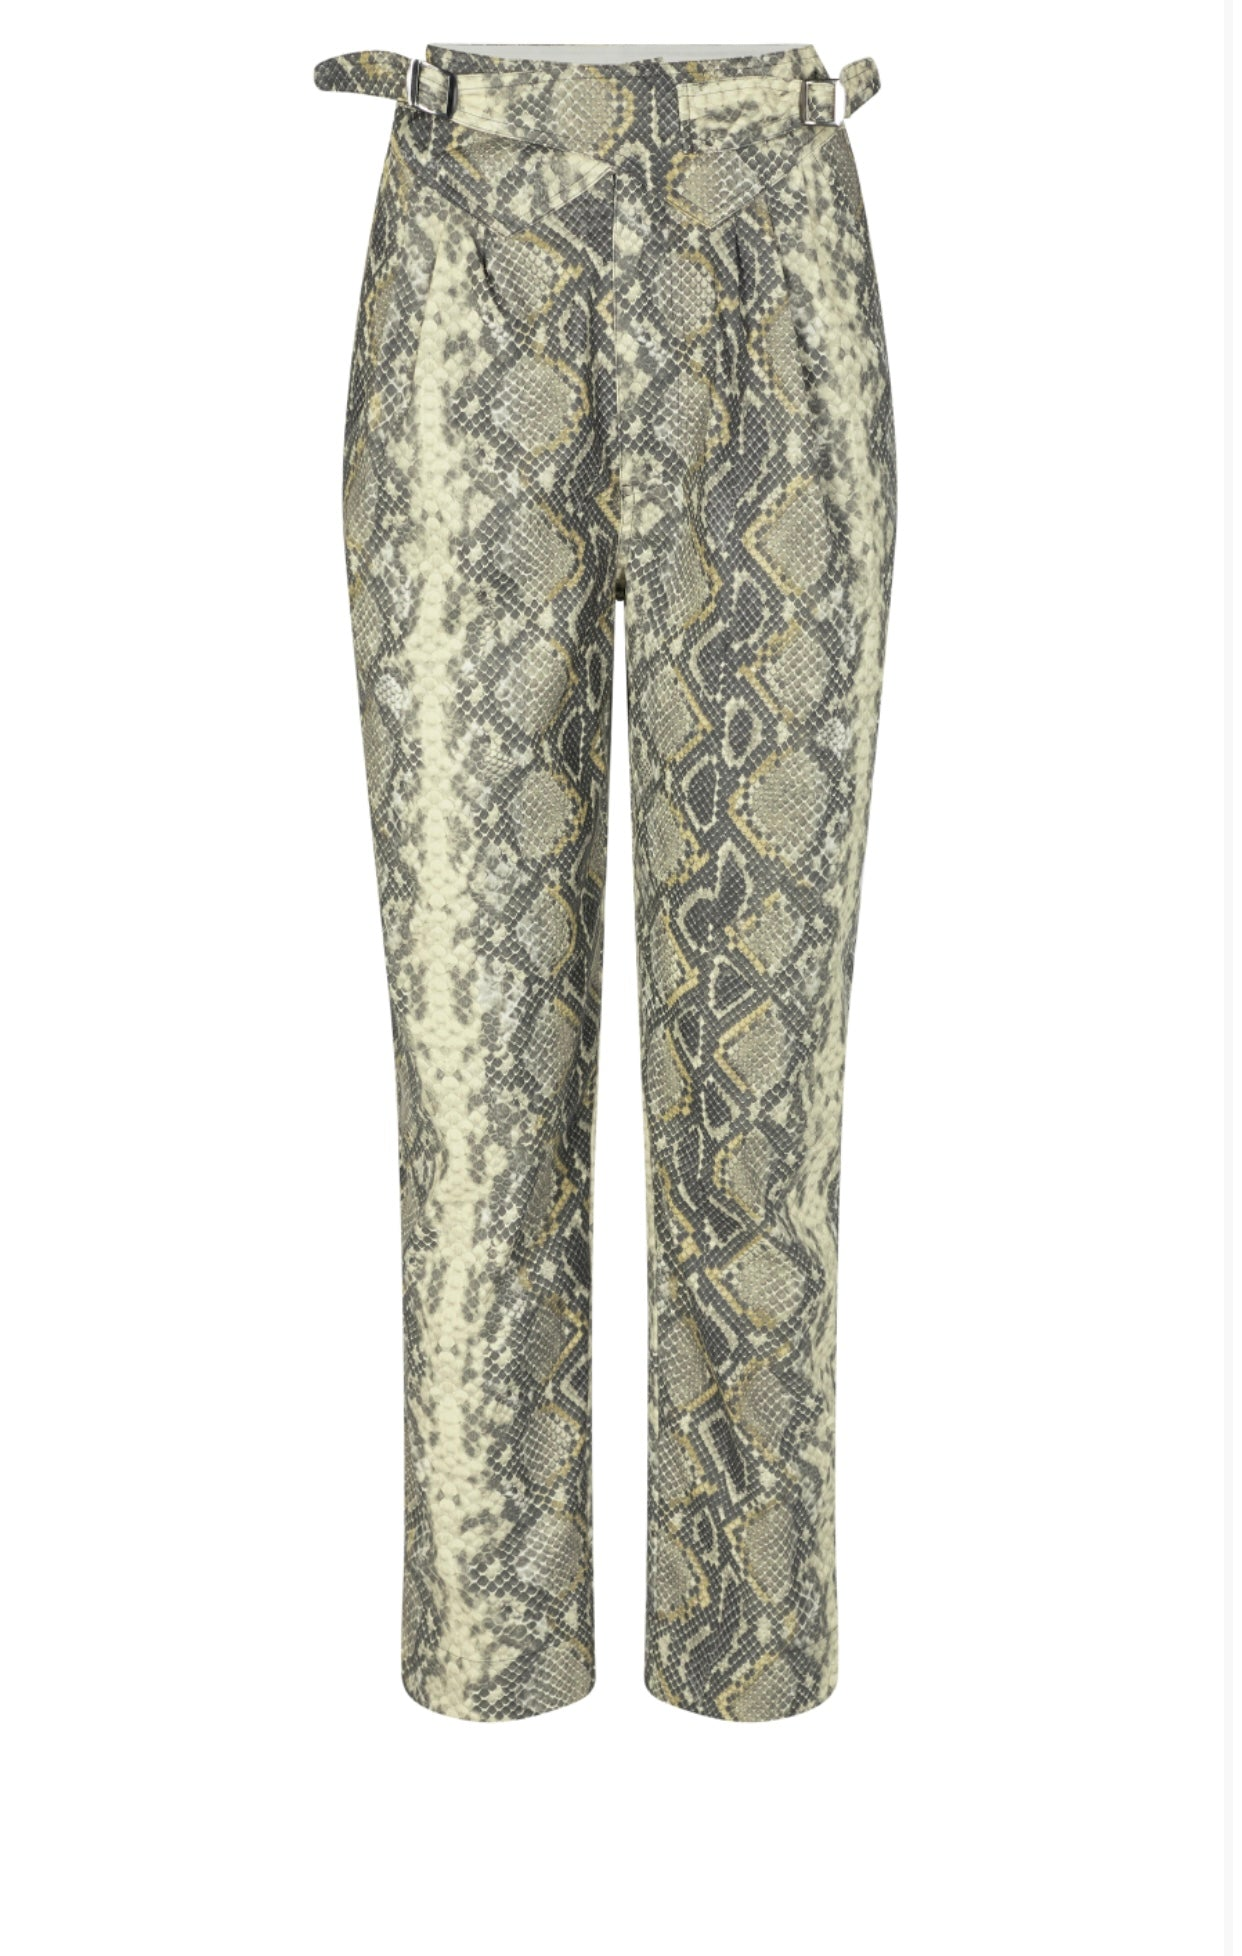 New Wilde Pants. Python